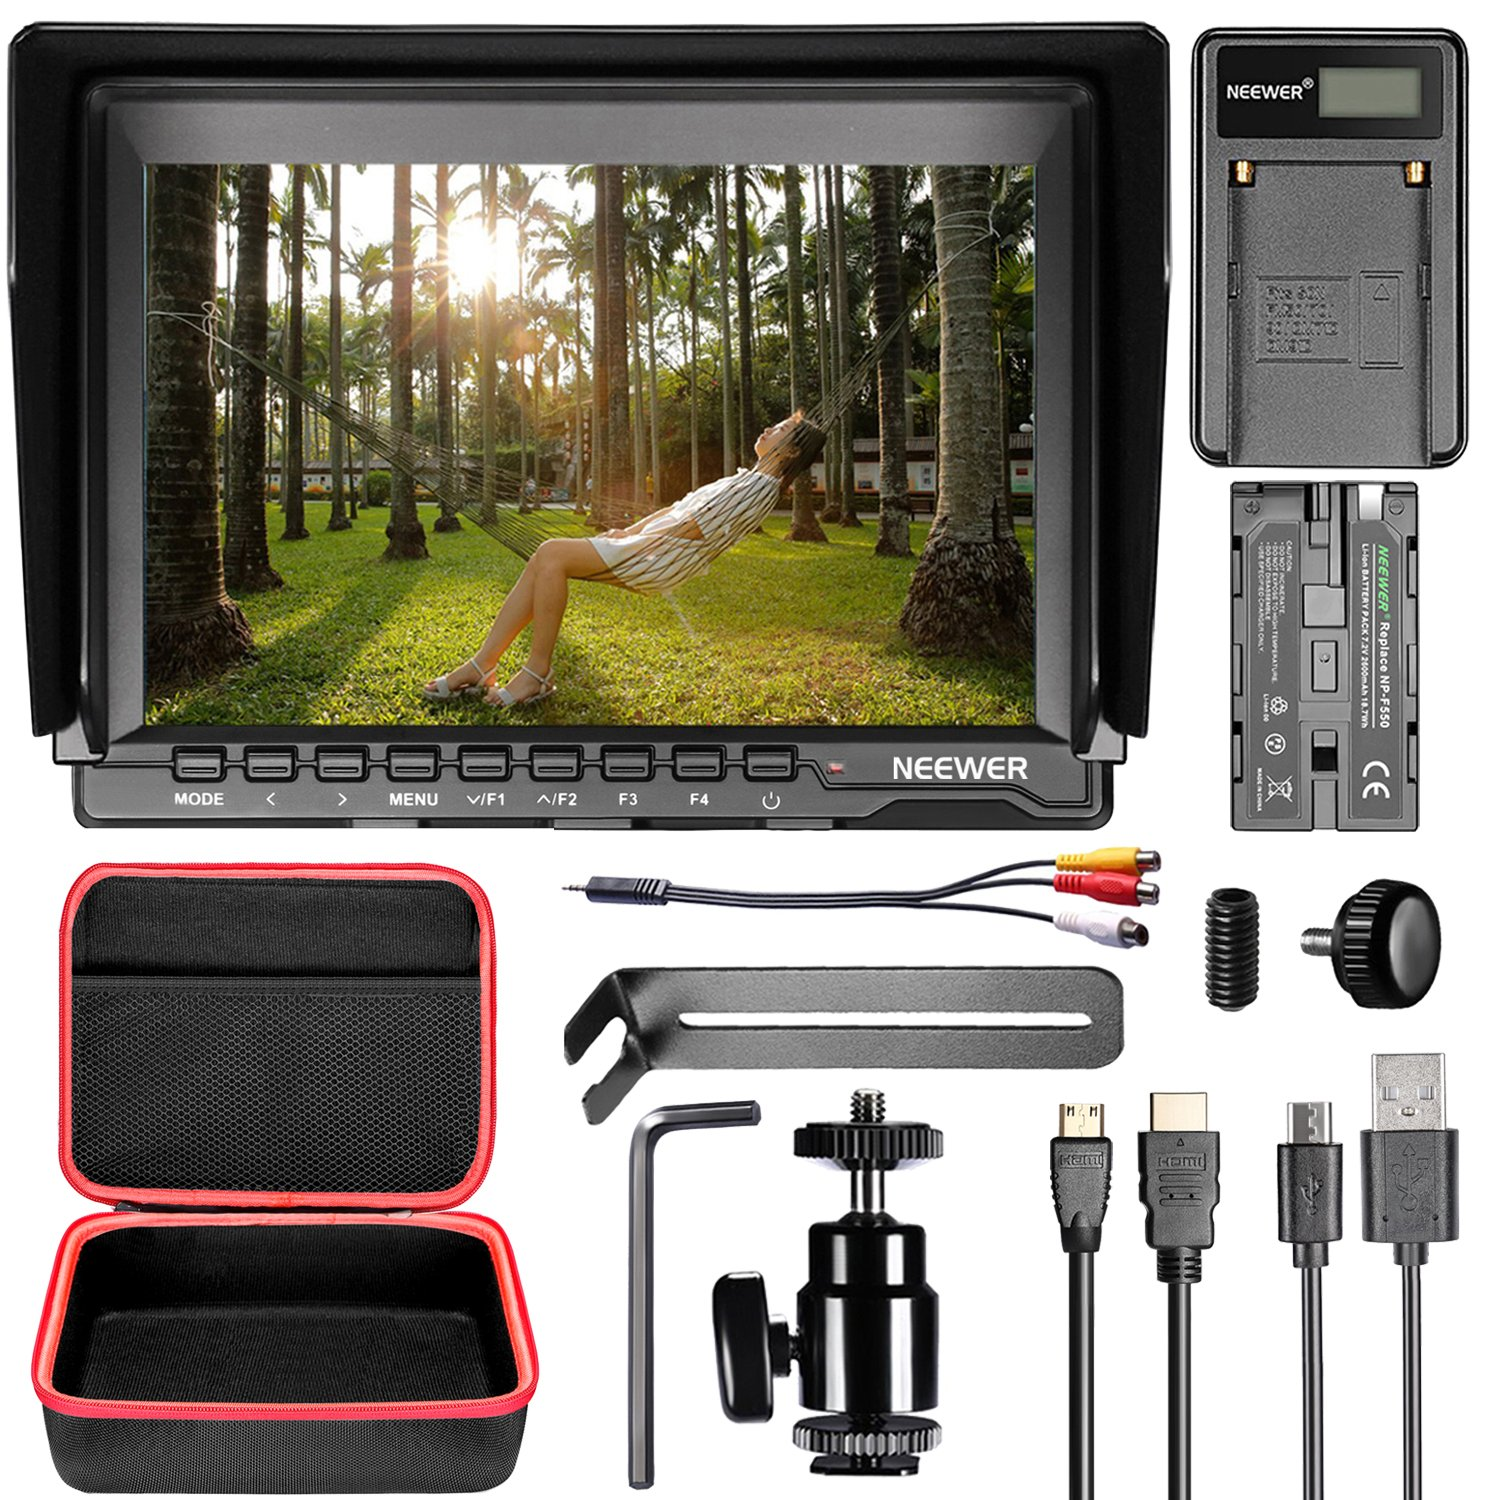 Neewer NW759 Camera Field Monitor Kit:7 inches Ultra HD 1280x800 IPS Screen Monitor,2600mAh F550 Replacement Battery,Micro USB Battery Charger, Carrying Case for Sony Canon Nikon Olympus Pentax DSLRs by Neewer